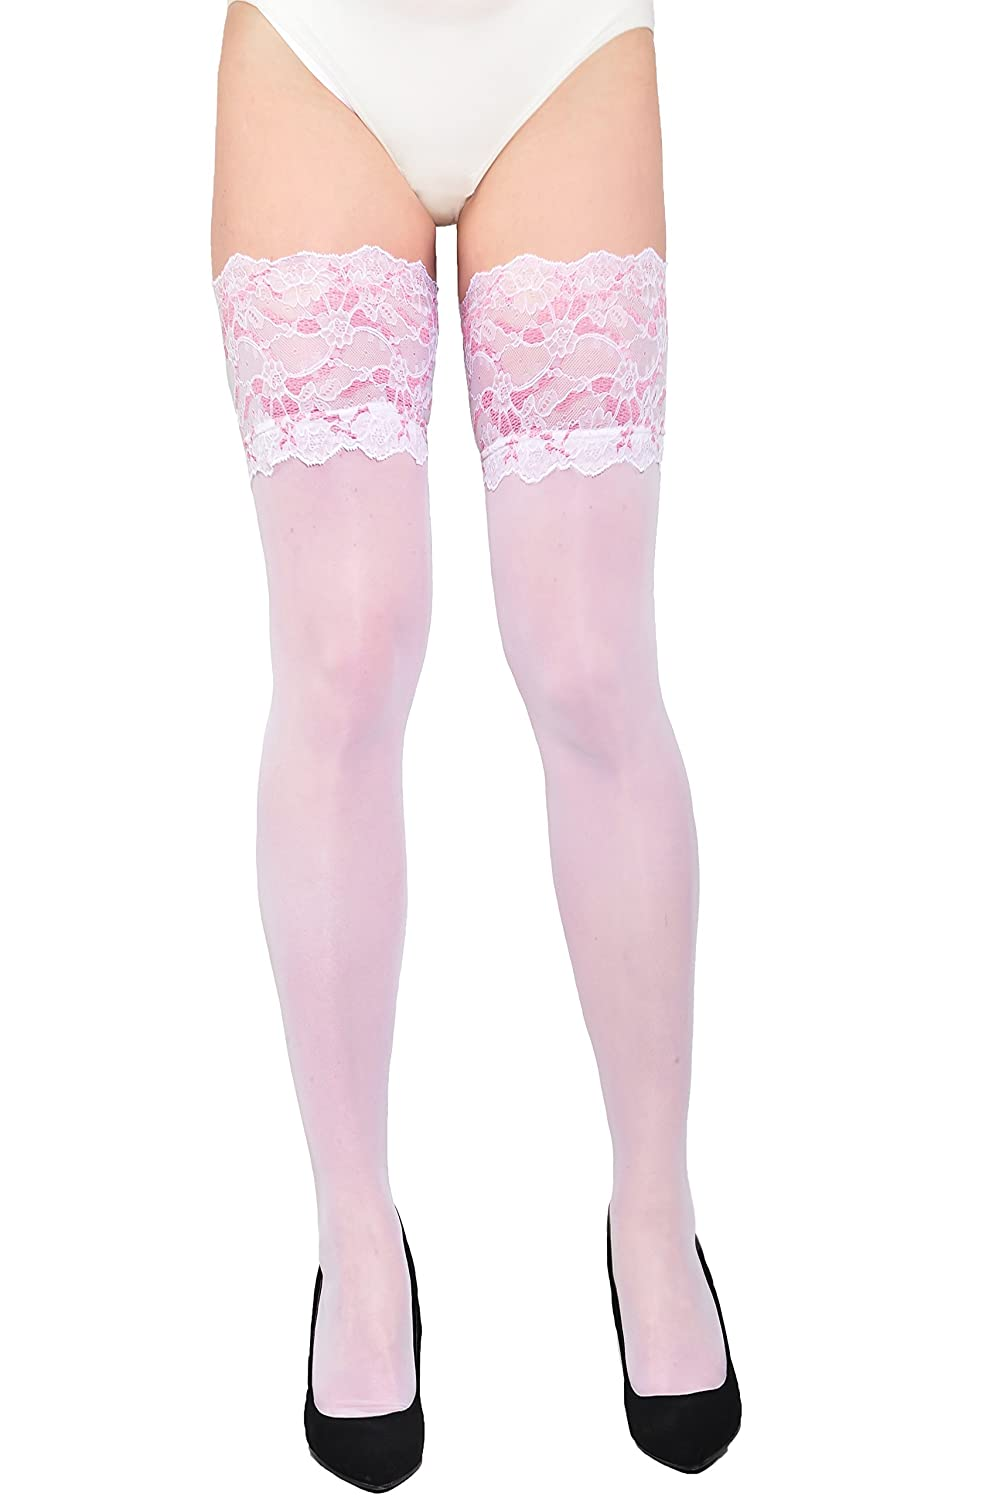 966fb0fa4ba Gabriella Wedding Collection Women s beautiful white thigh high stockings  with wide lace . at Amazon Women s Clothing store